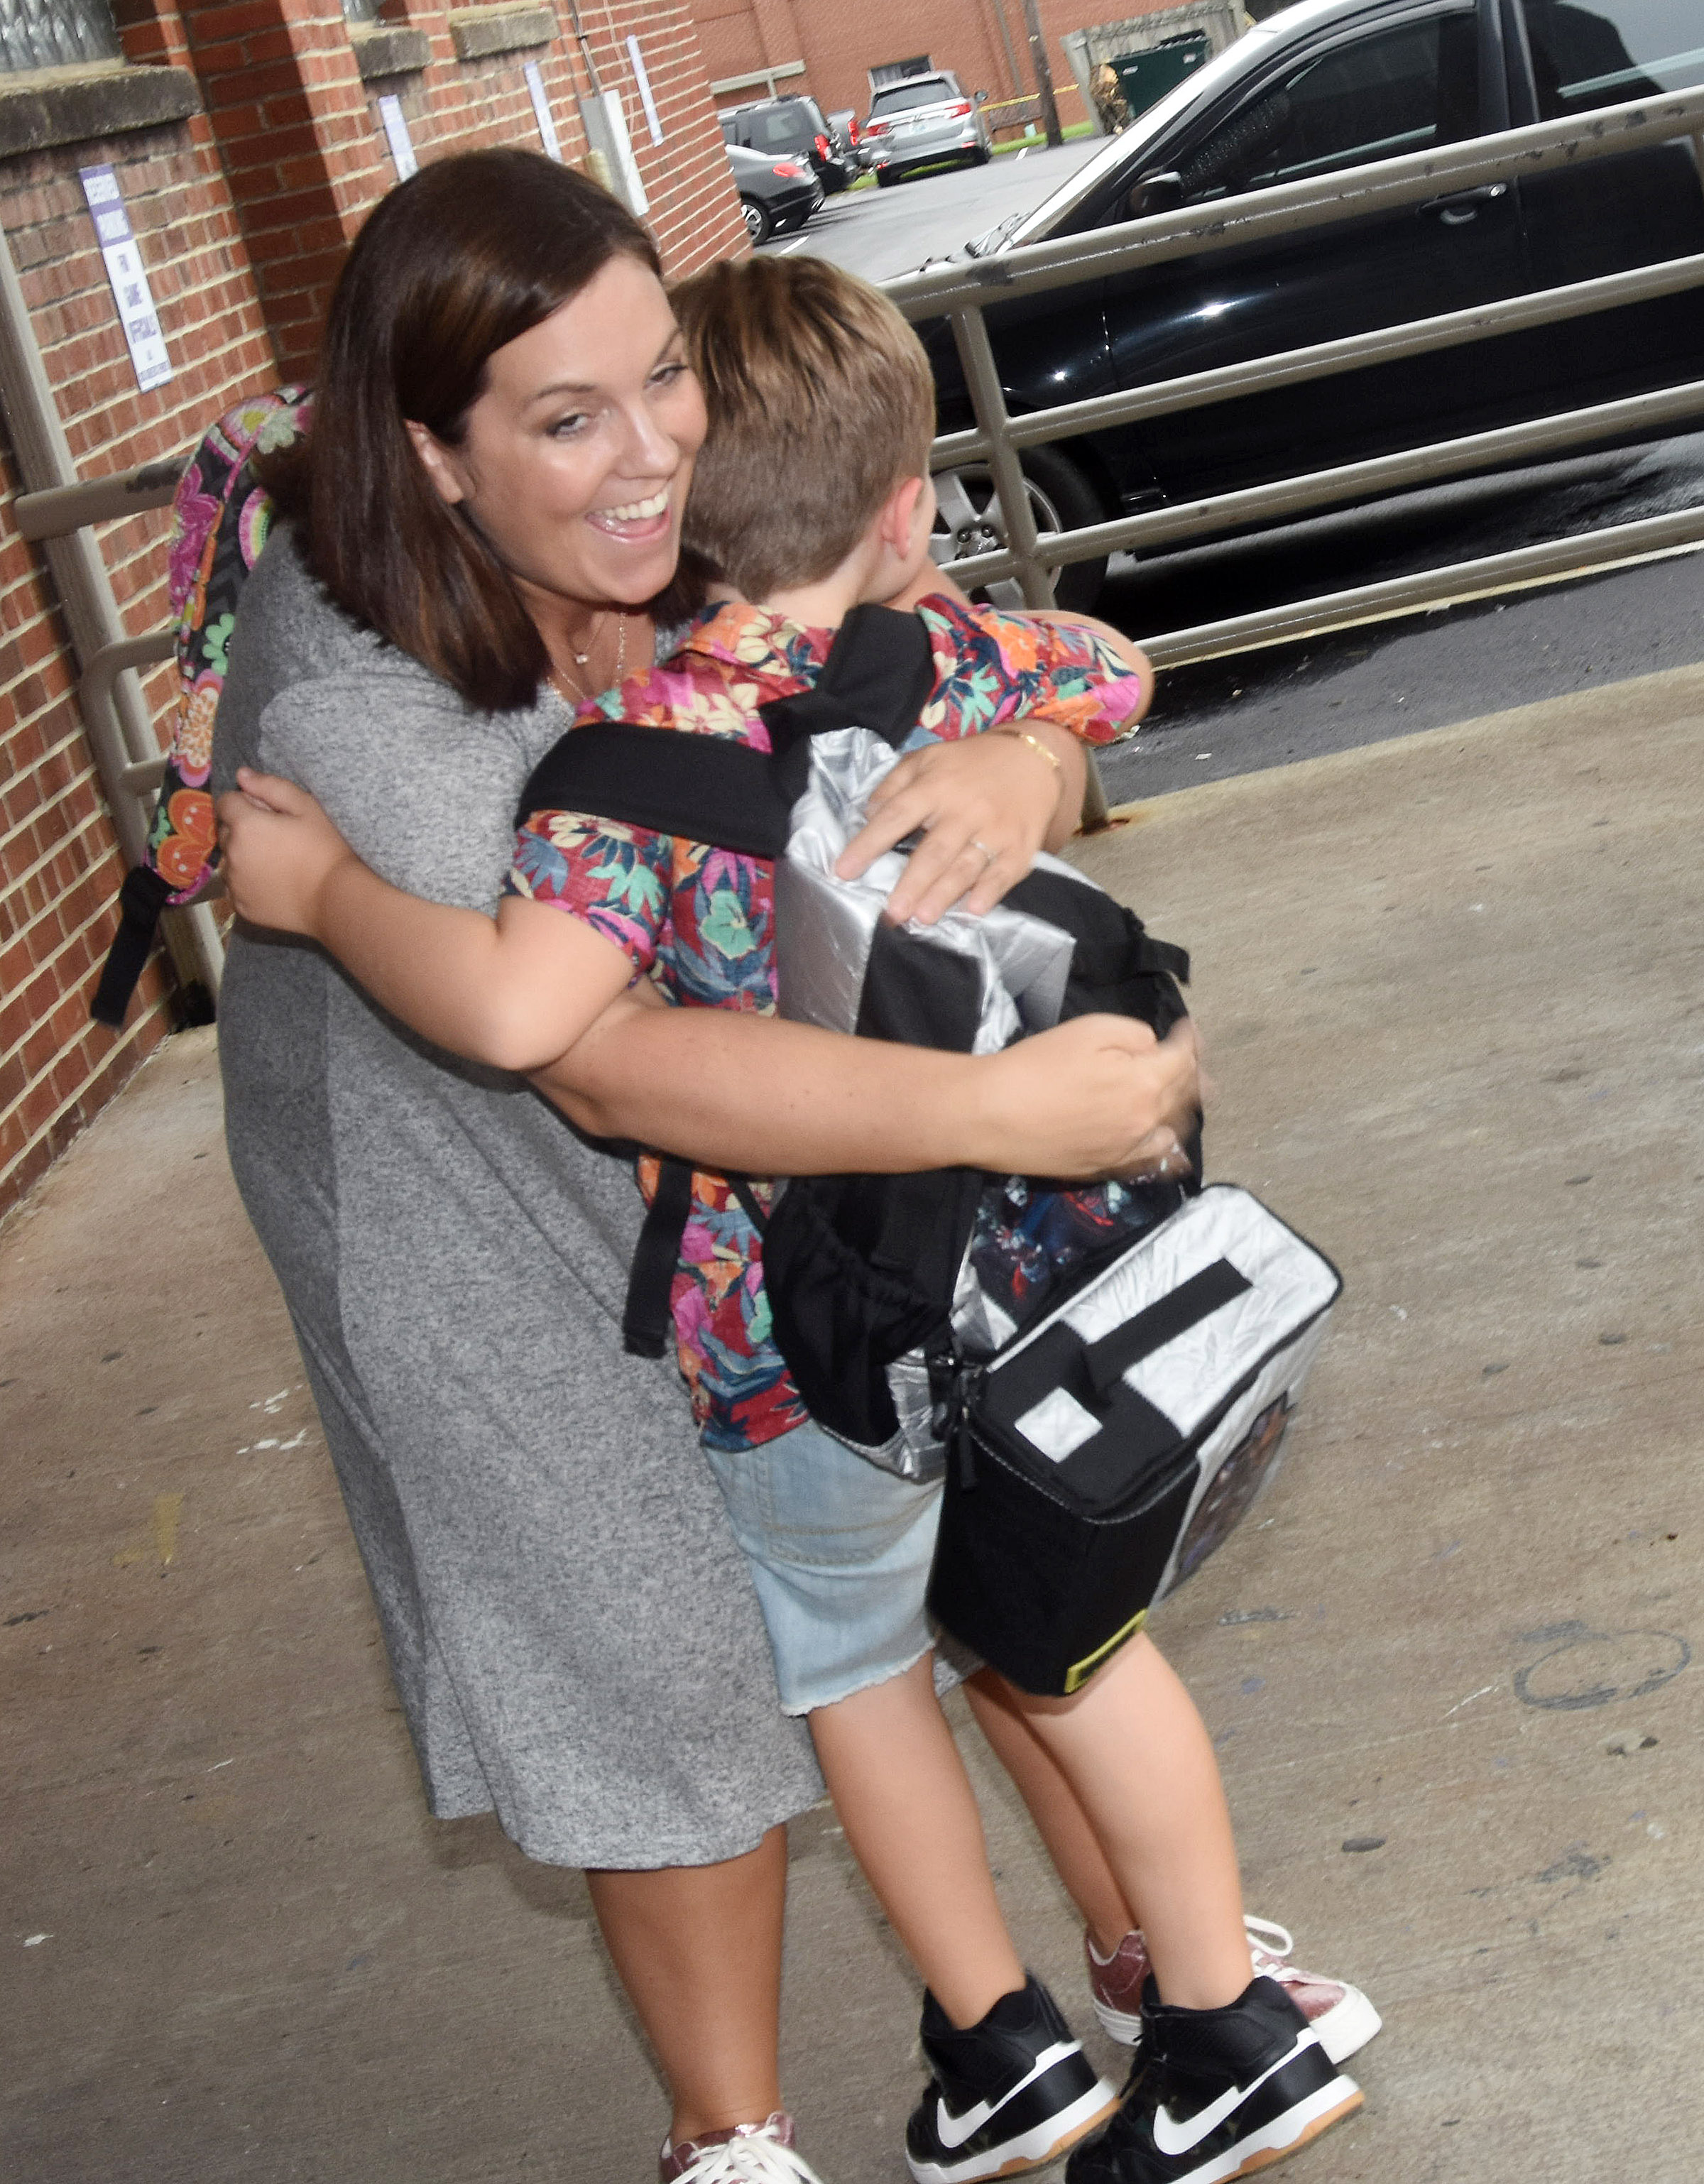 Campbellsville High School teacher Lindsay Williams hugs her son Gavin, a second-grader at Campbellsville Elementary School, as he gets off the bus at the end of the day.